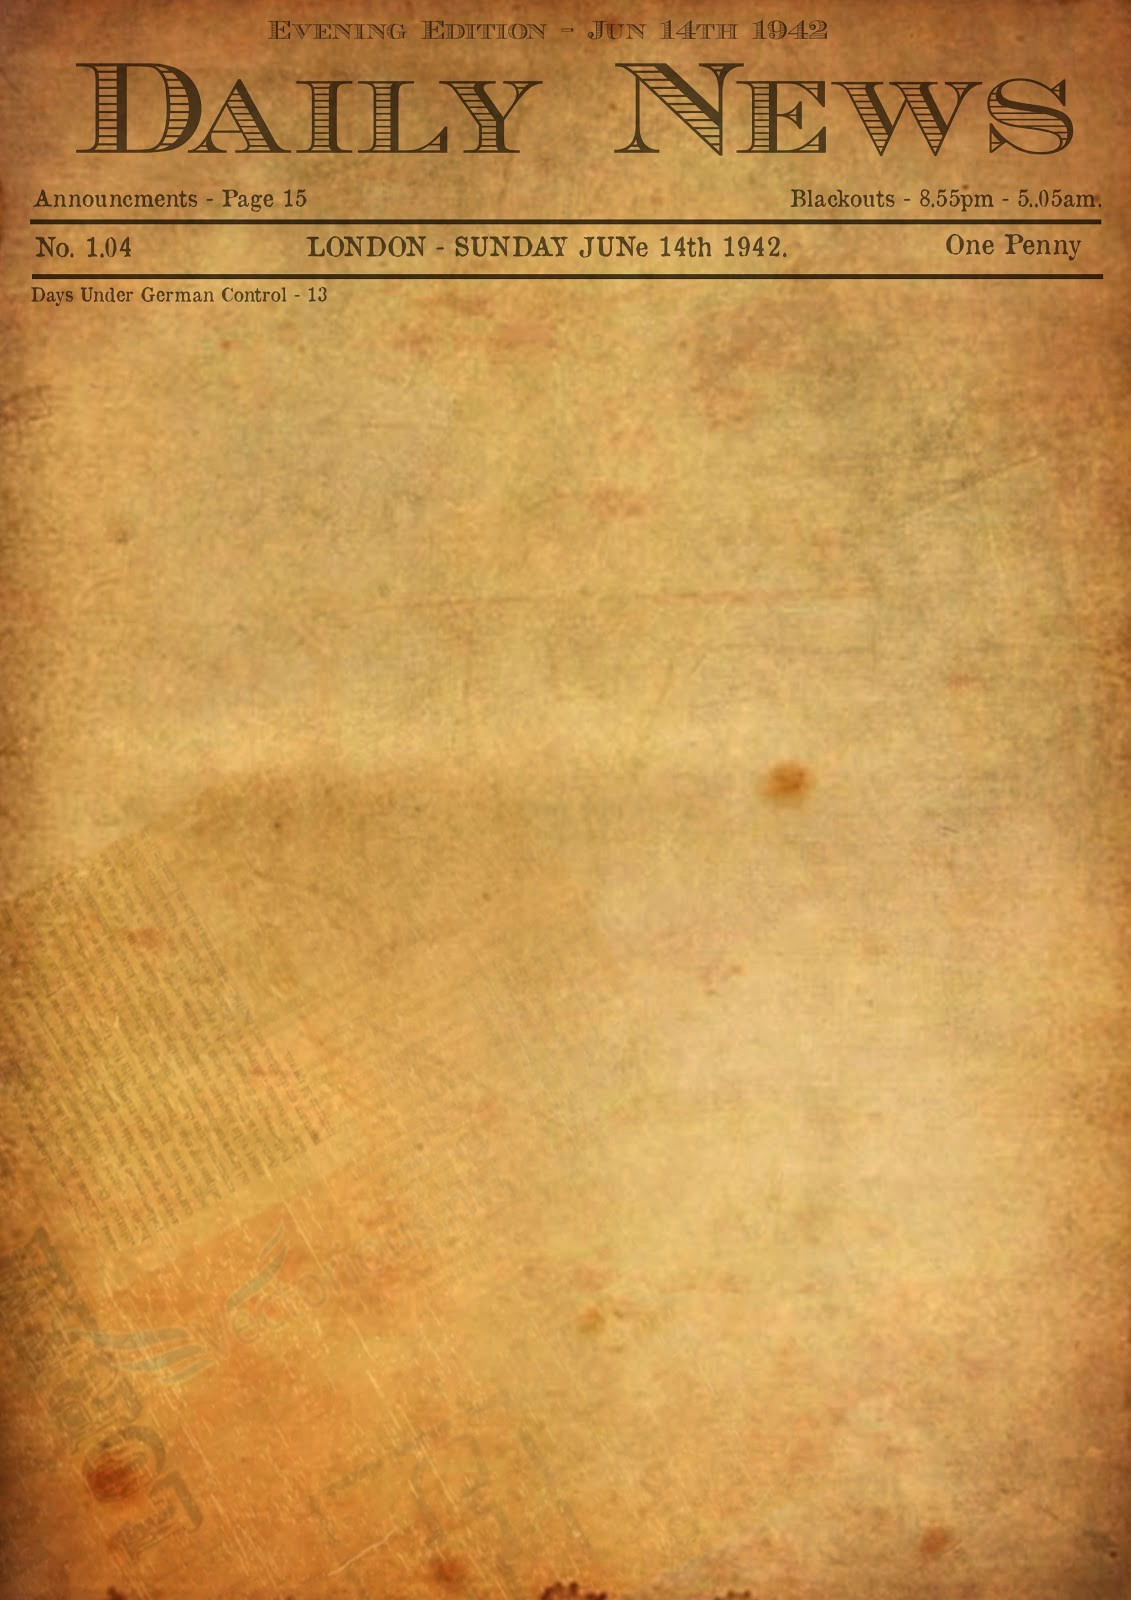 Newspaper Template for Word 2013 Beautiful Old Newspaper Template